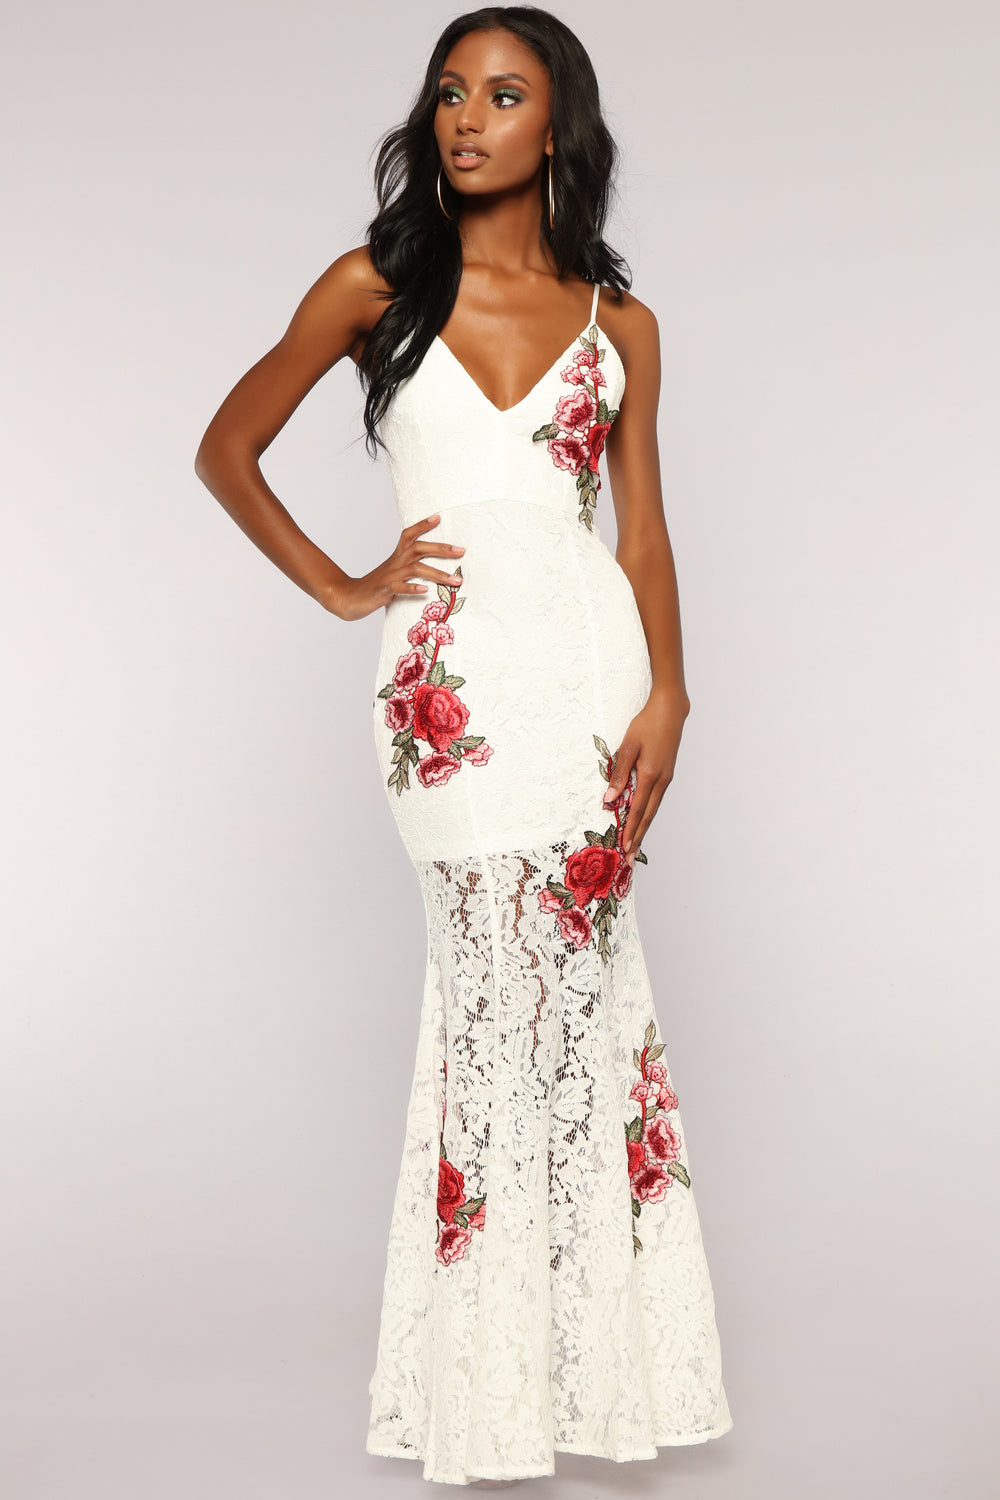 Rose All Day Lace Dress - White